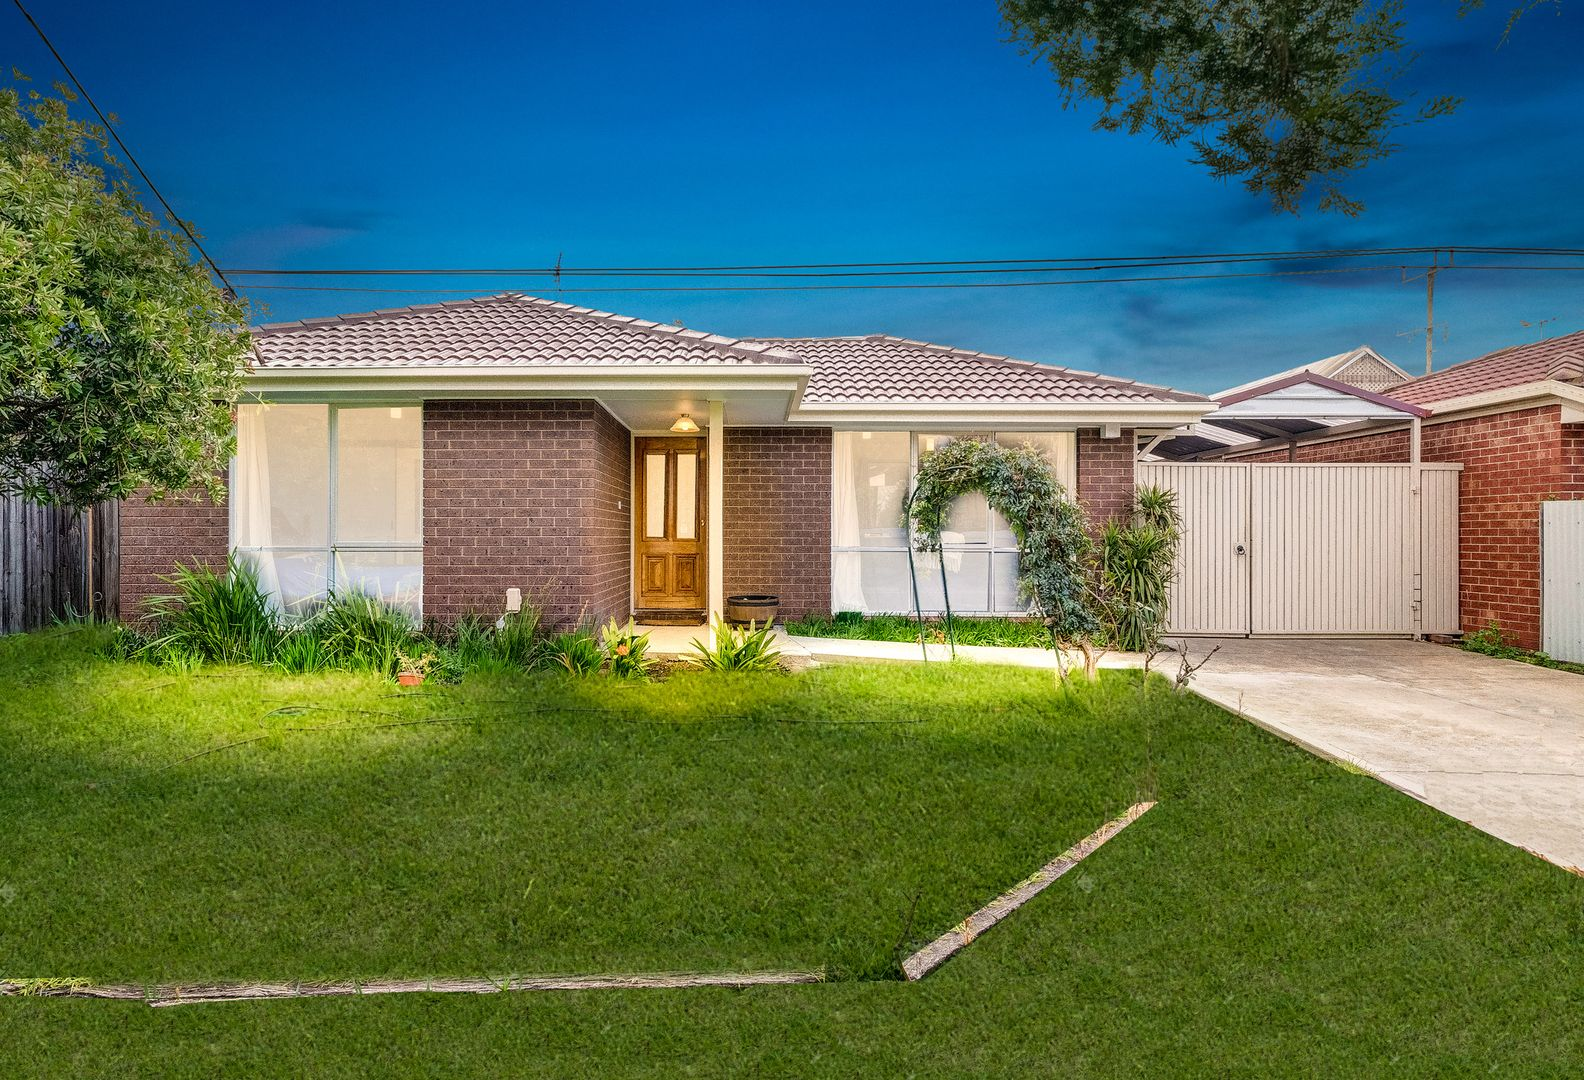 43 KATHLEEN CRESCENT, Hoppers Crossing VIC 3029, Image 0